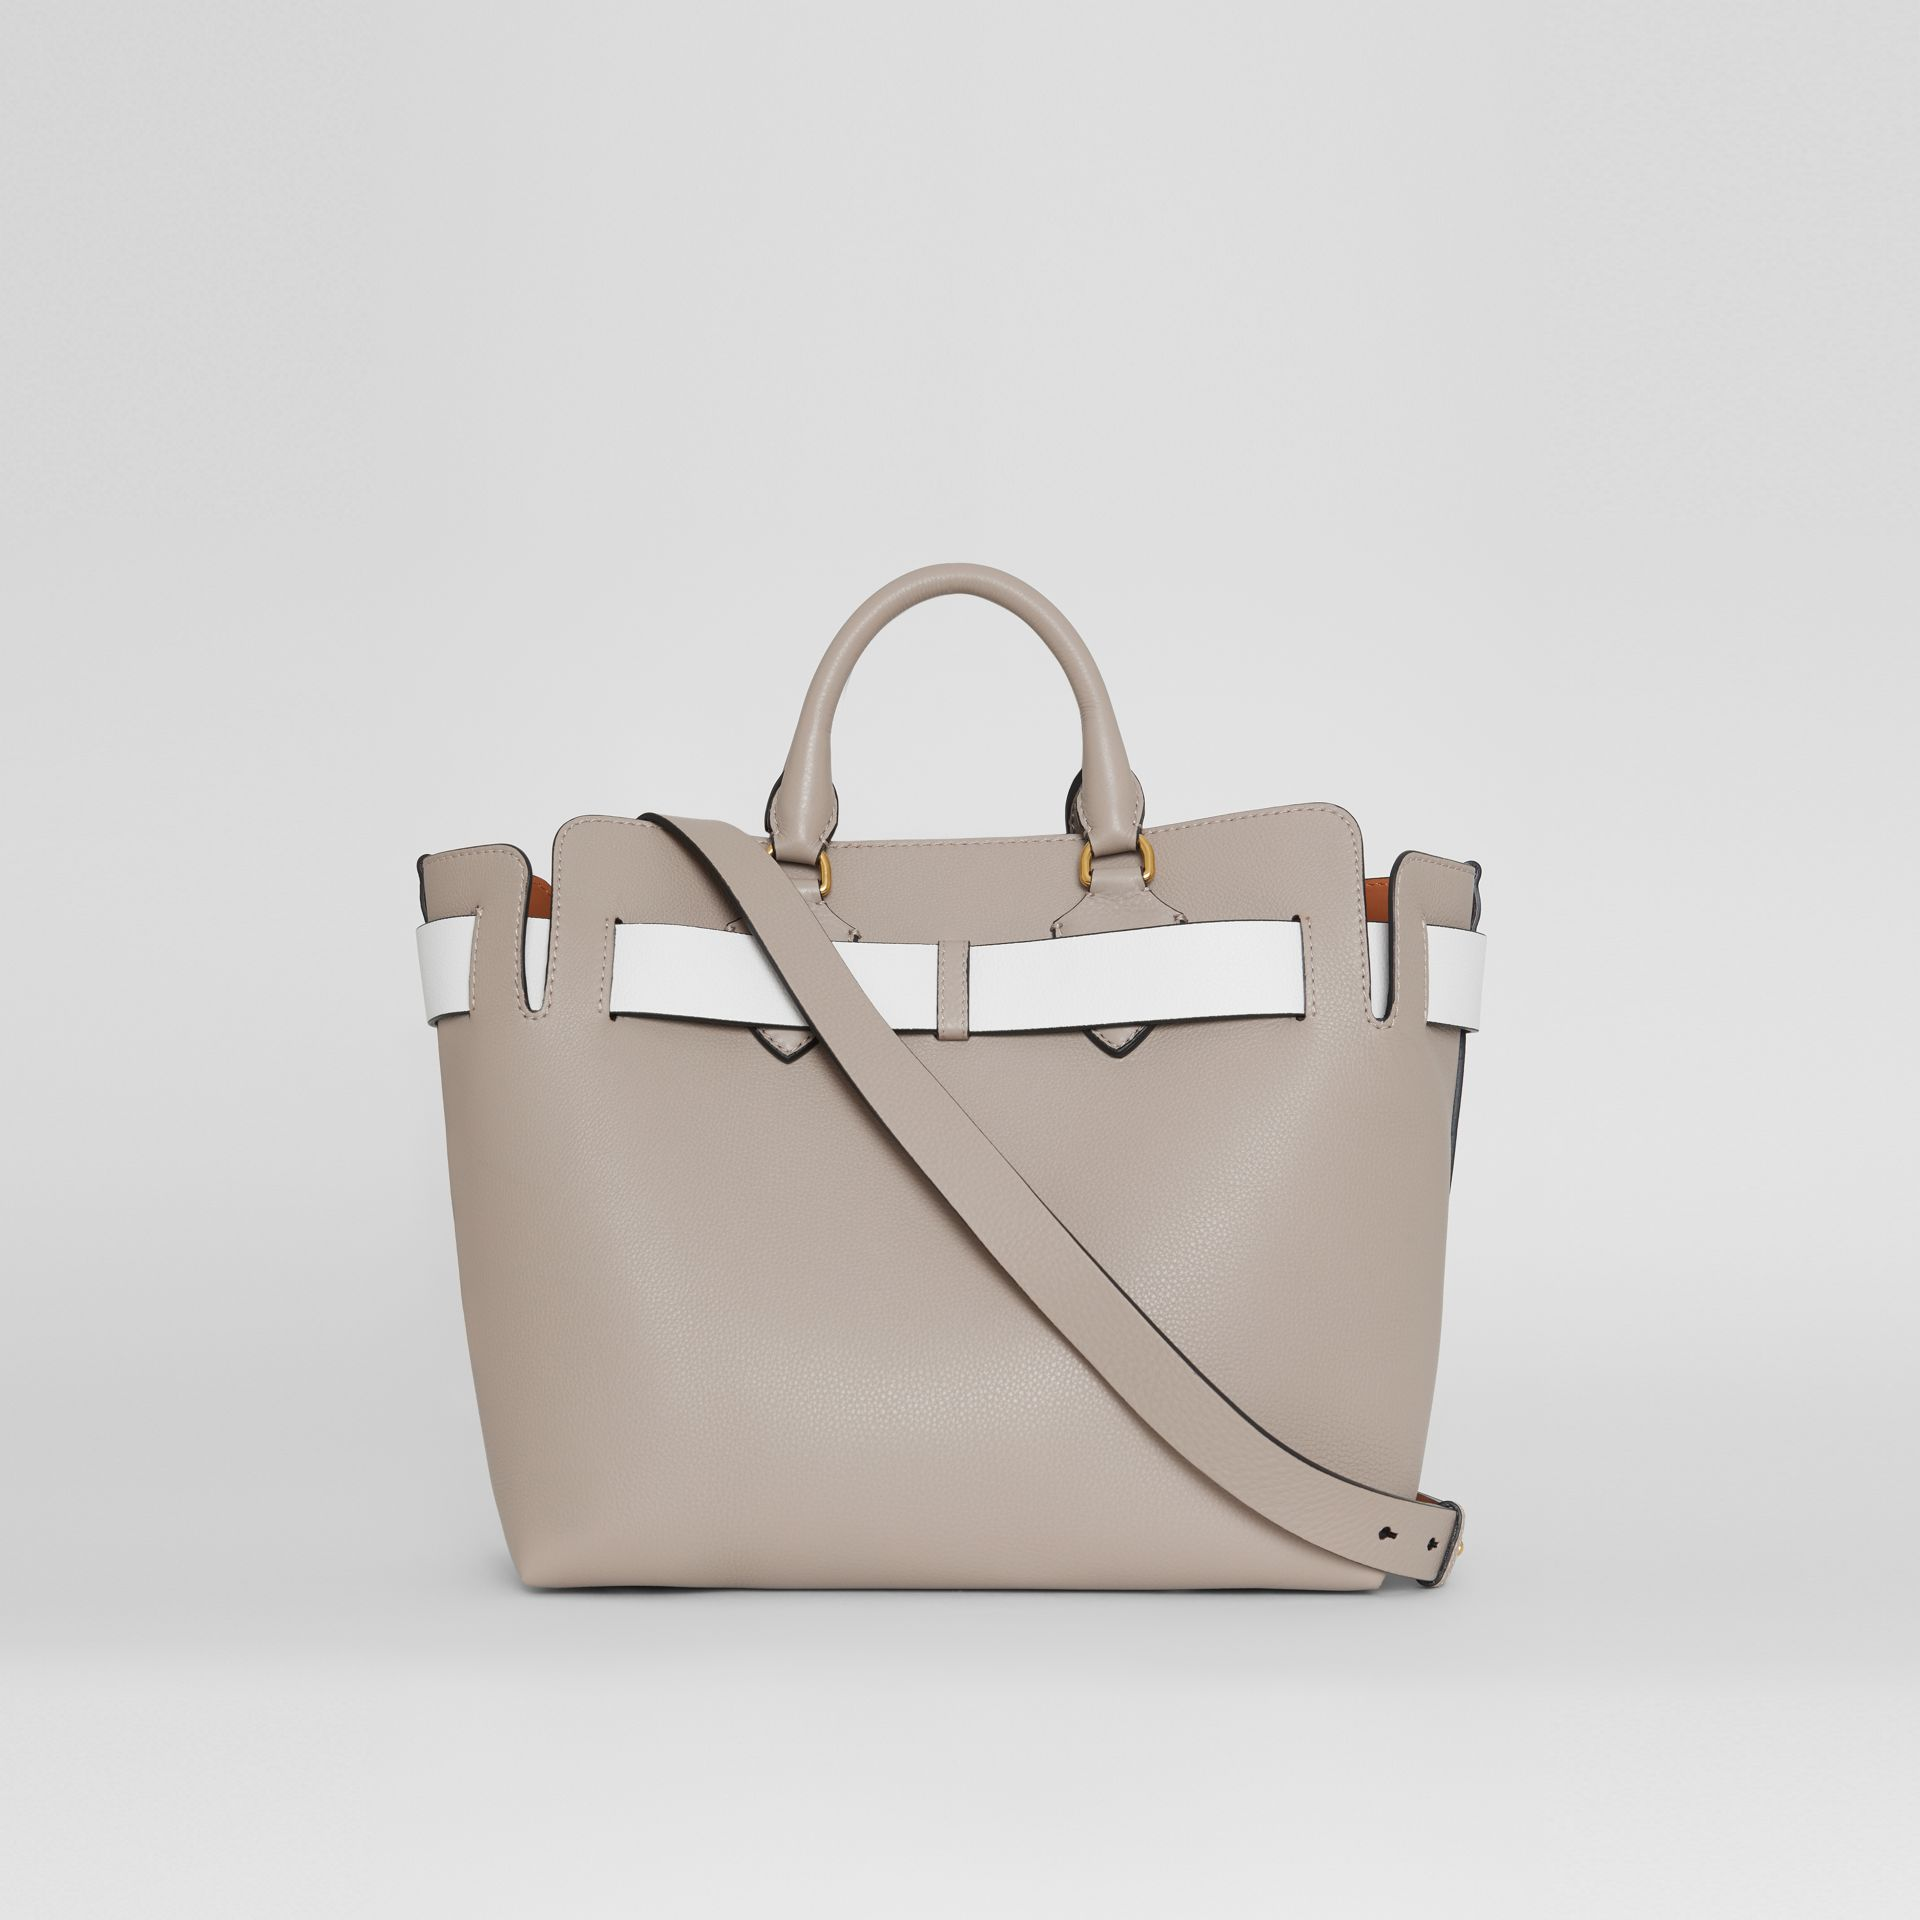 Sac The Belt moyen en cuir (Gris Minéral) - Femme | Burberry - photo de la galerie 7